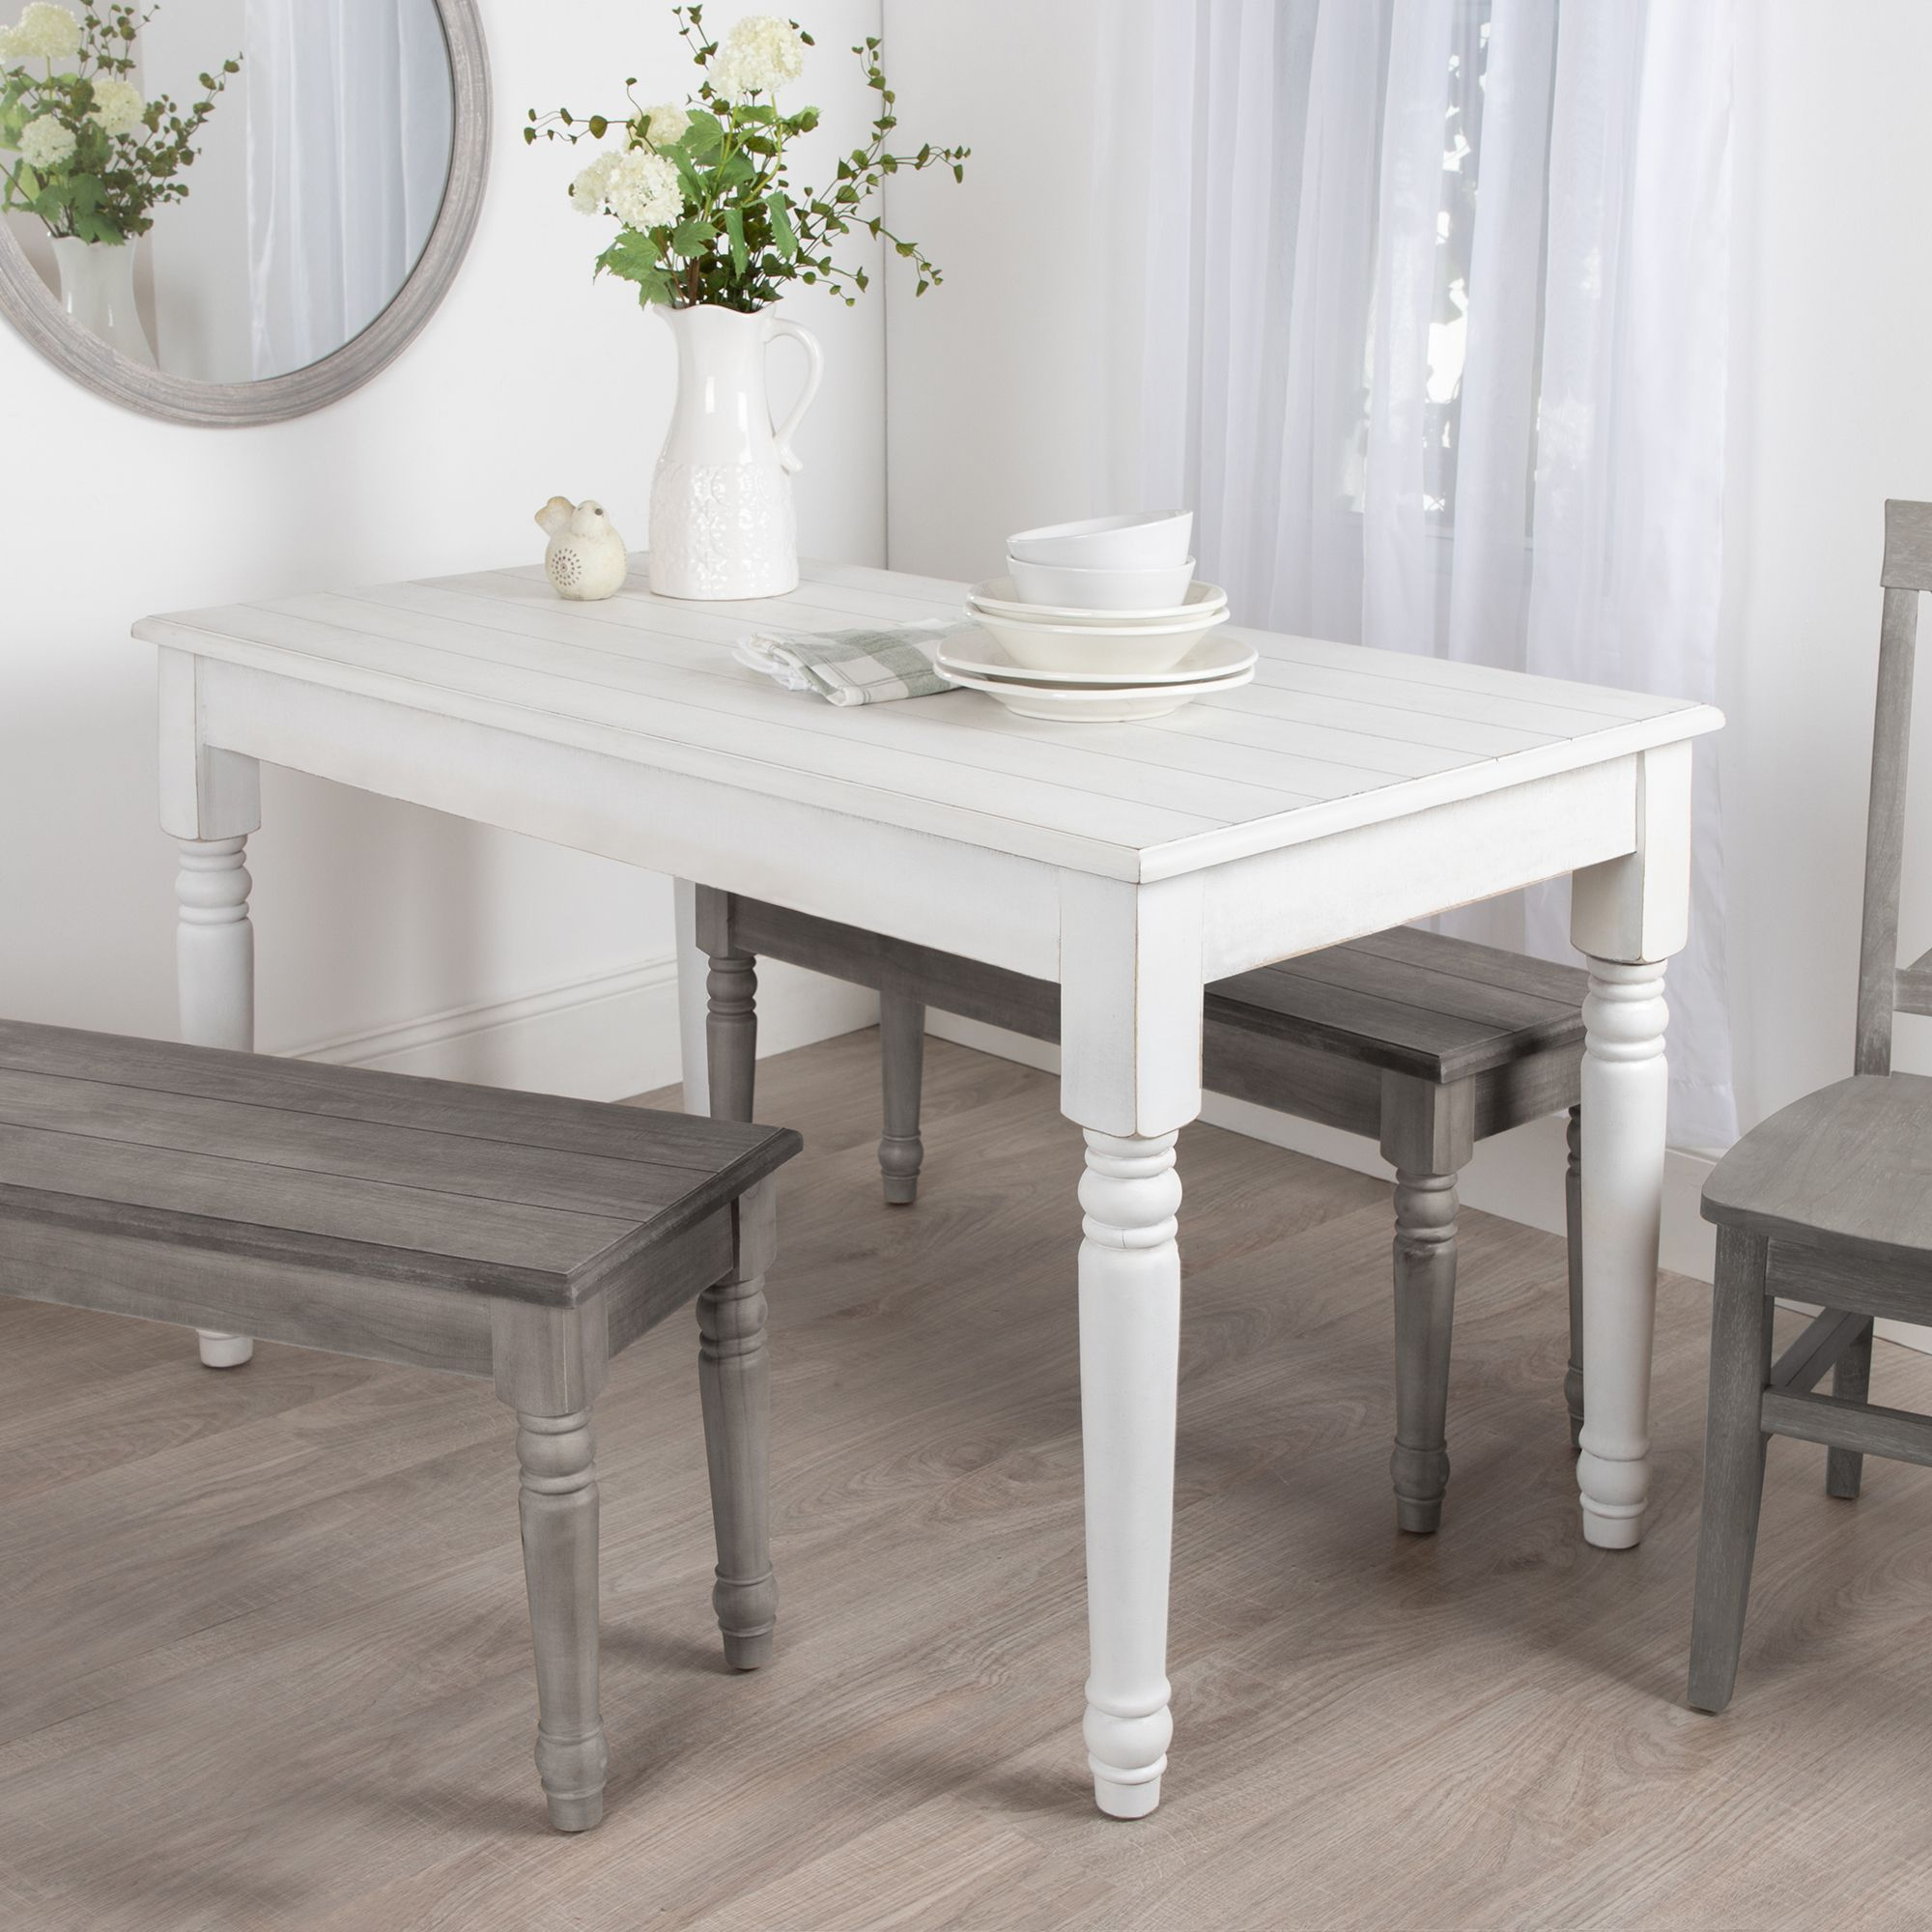 White farmhouse style dining table. #farmhousetable #diningtables #furniture